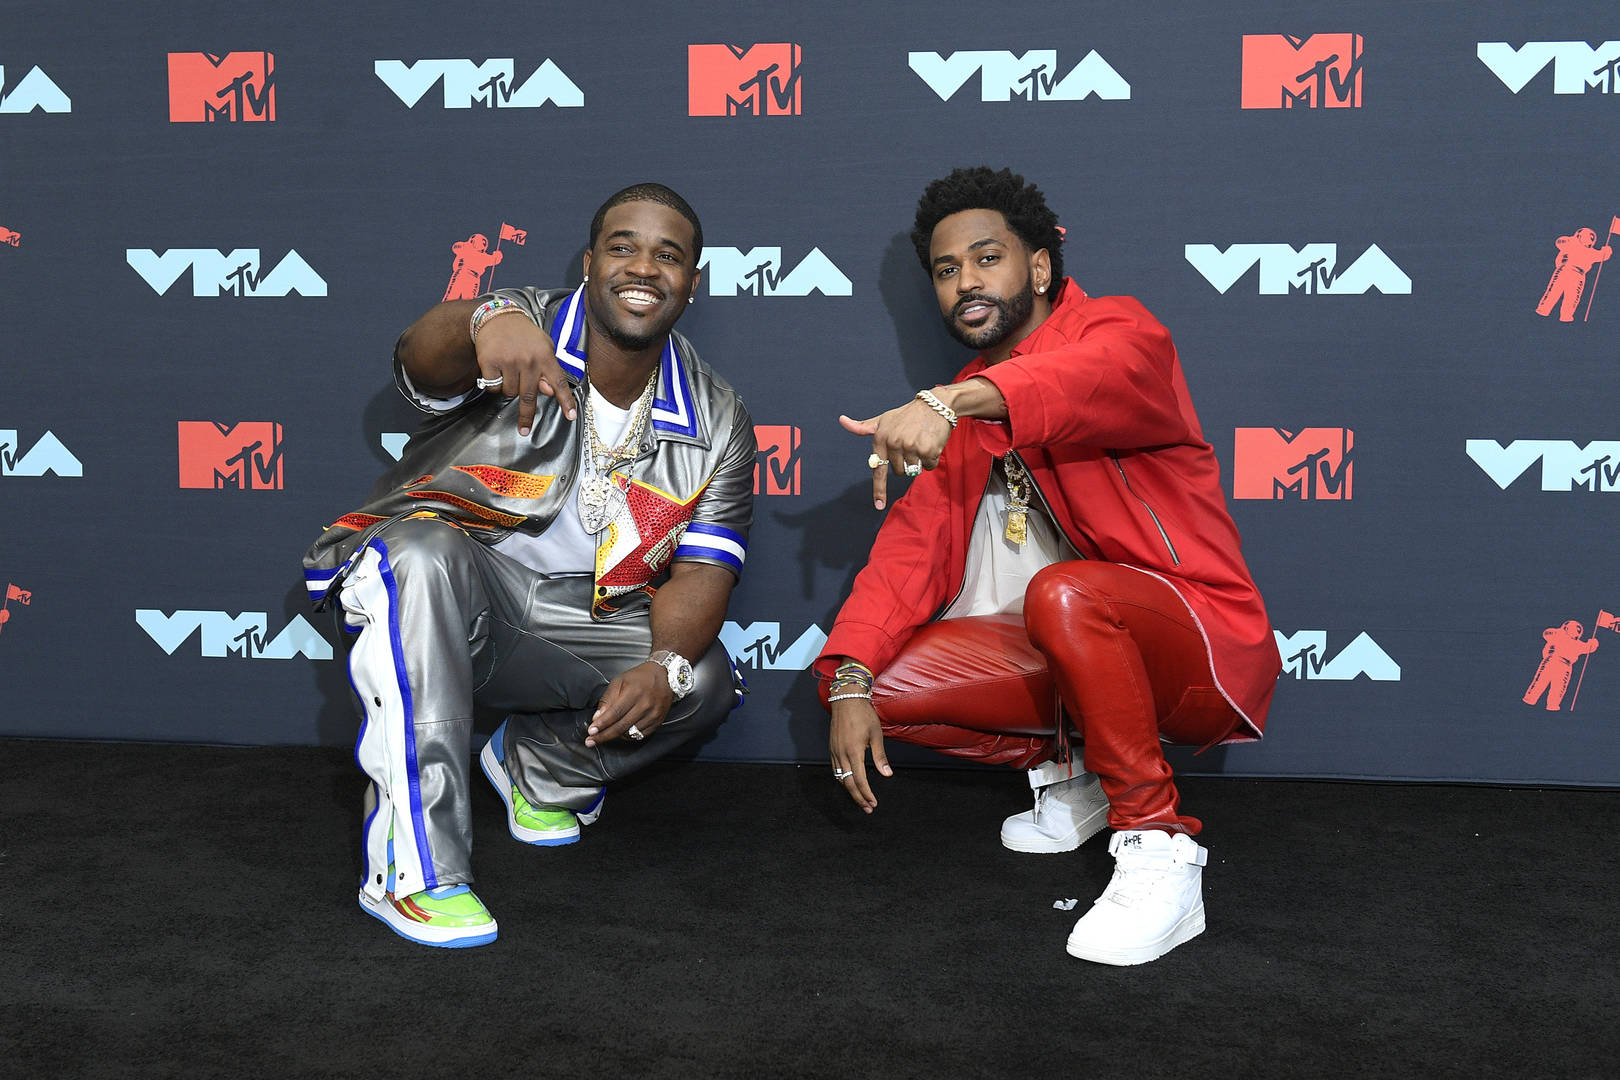 MTV VMA's Ratings Hit All-Time Low